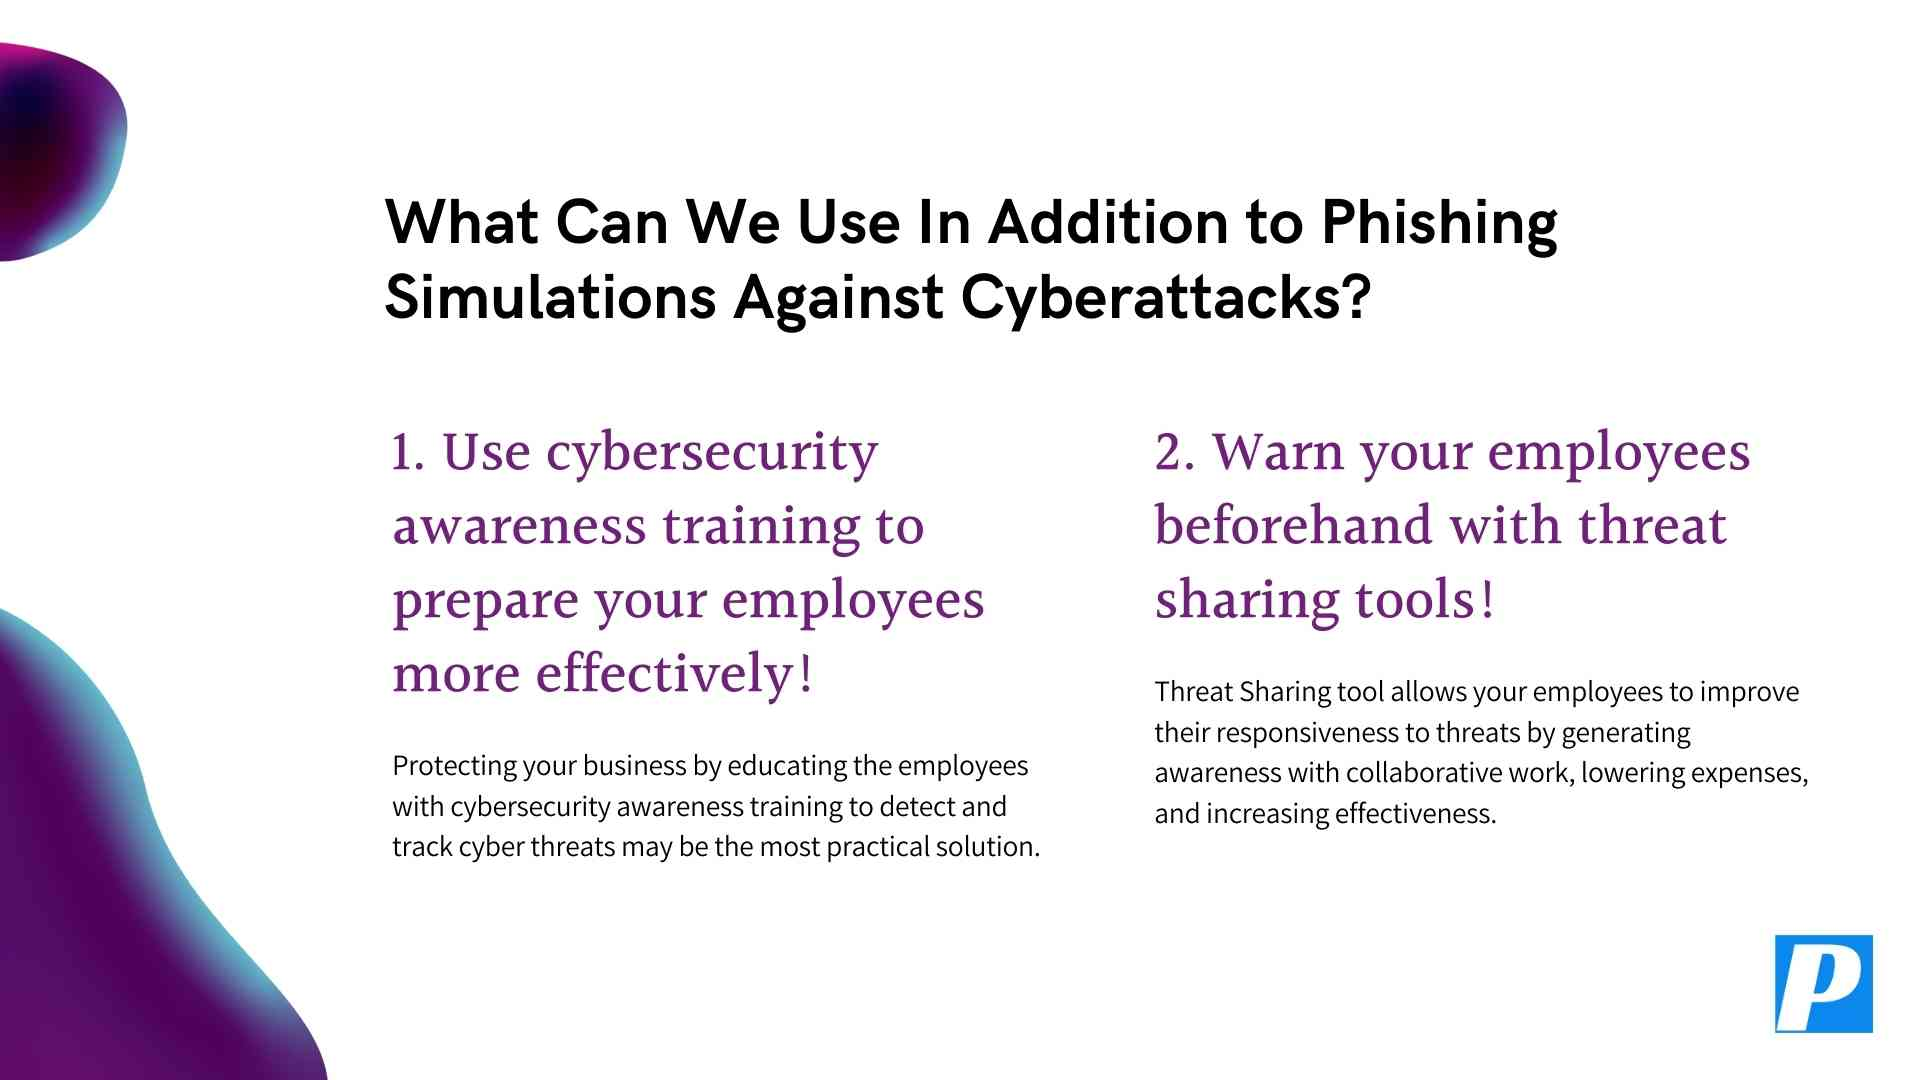 How Effective Are Phishing Simulations Against Cyberattacks?